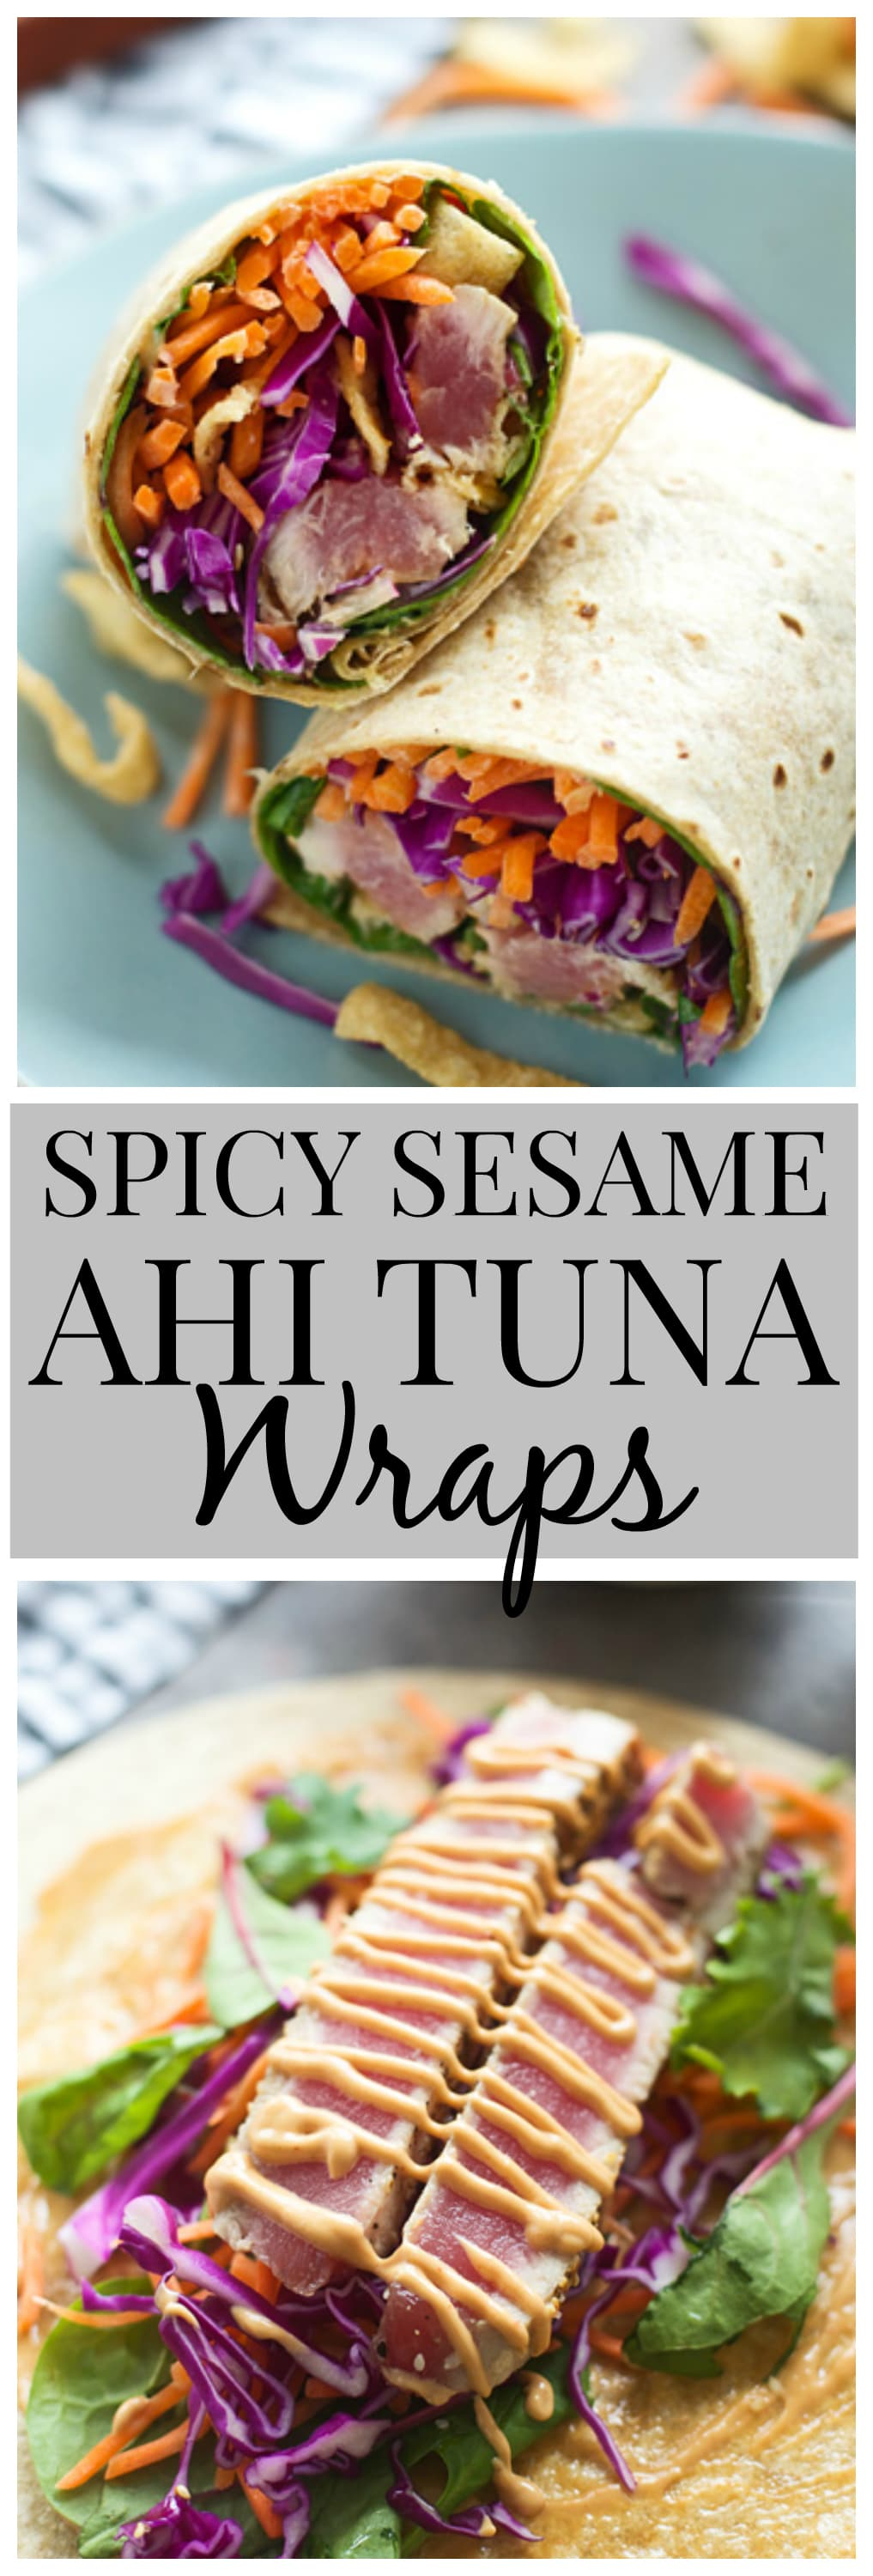 Spicy Sesame Ahi Tuna Wraps